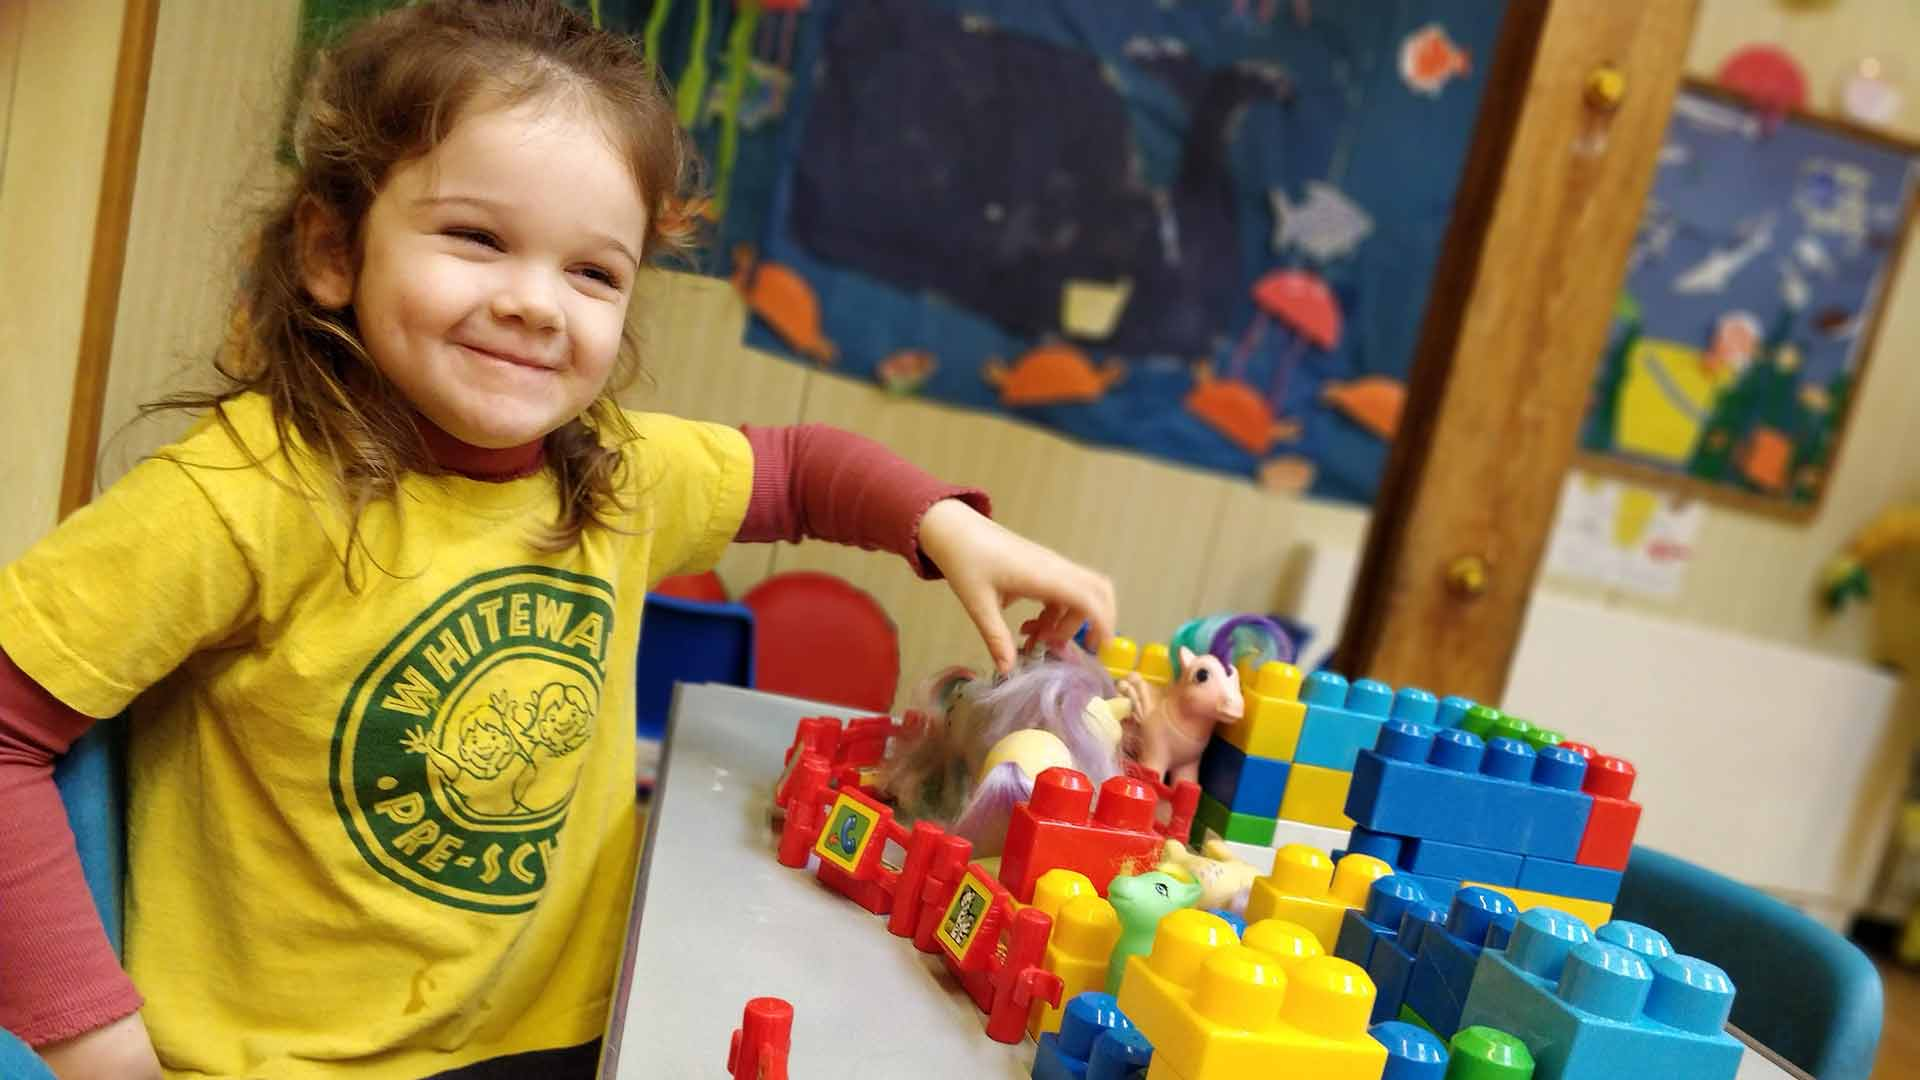 A young girl looking happy playing with a pony toy at Rottingdean Whiteway Pre-School